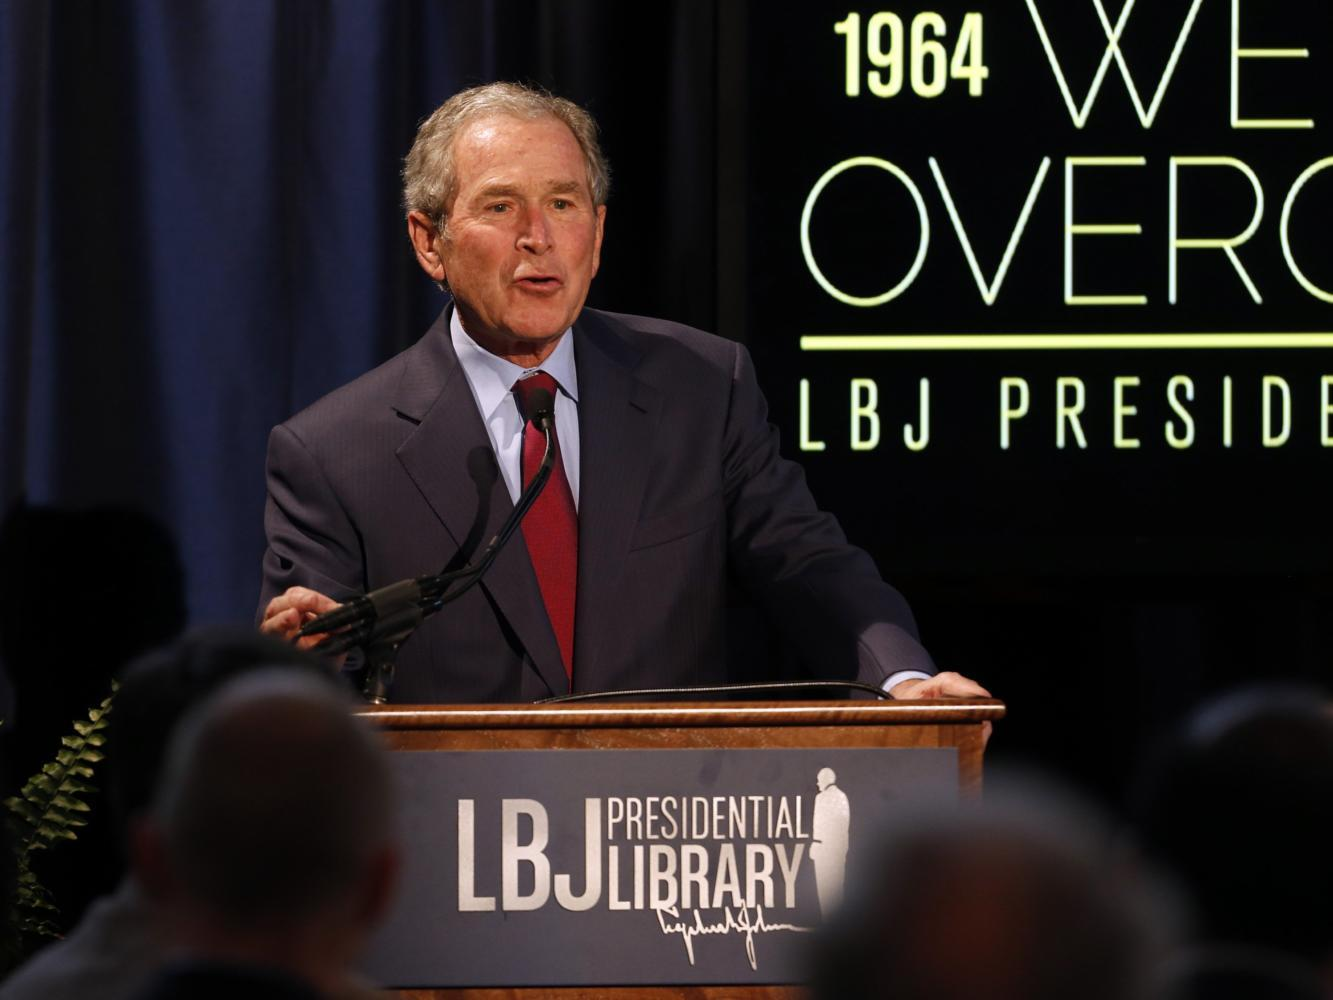 Former President George W. Bush gives a speech during the 2014 Civil Rights Summit at the LBJ Presidential Library in Austin, Texas. (Vernon Bryant/Dallas Morning News/MCT)